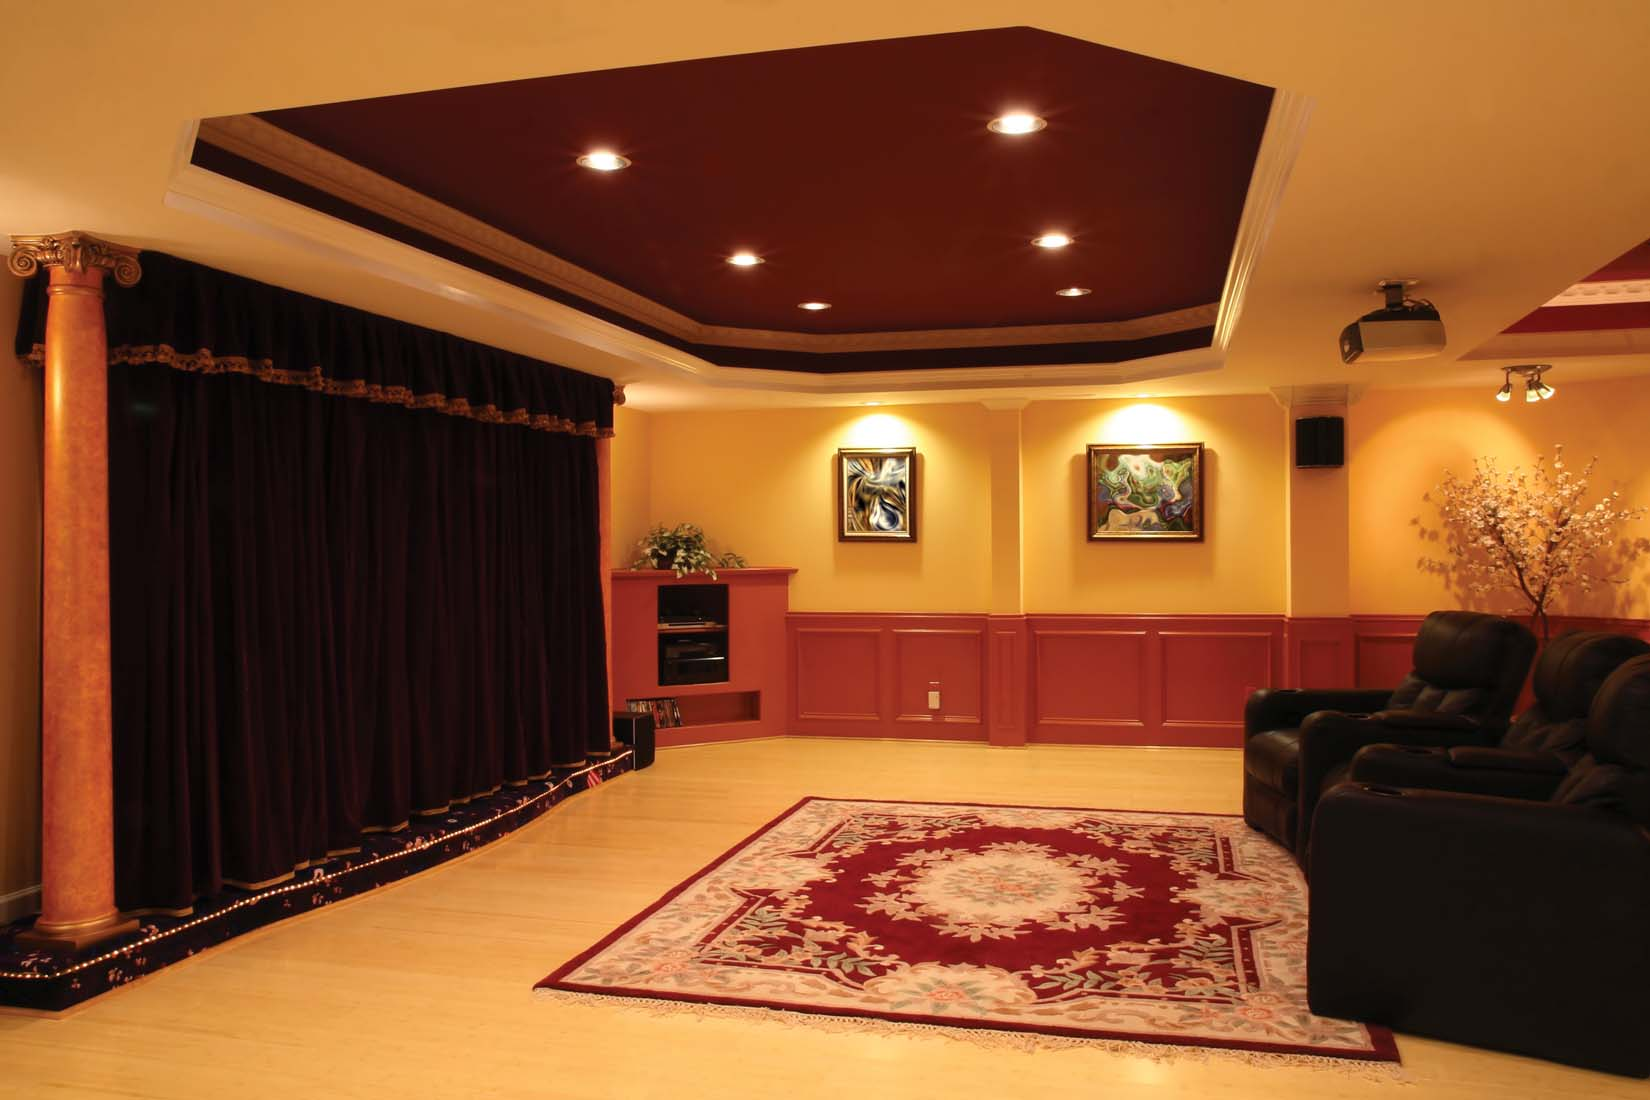 How to light a room for the ultimate home theater experience ge lighting north america news Home design ideas lighting